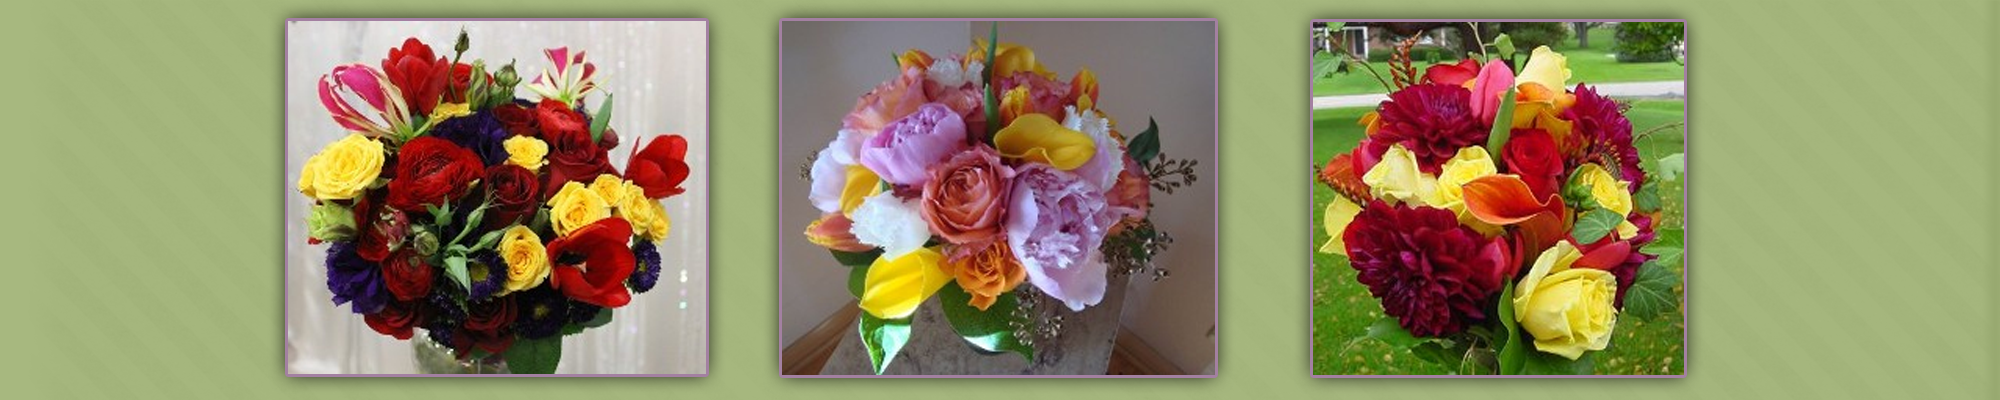 Custom Bouquets Birthdays Anniversary Flowers Flowers Mothers